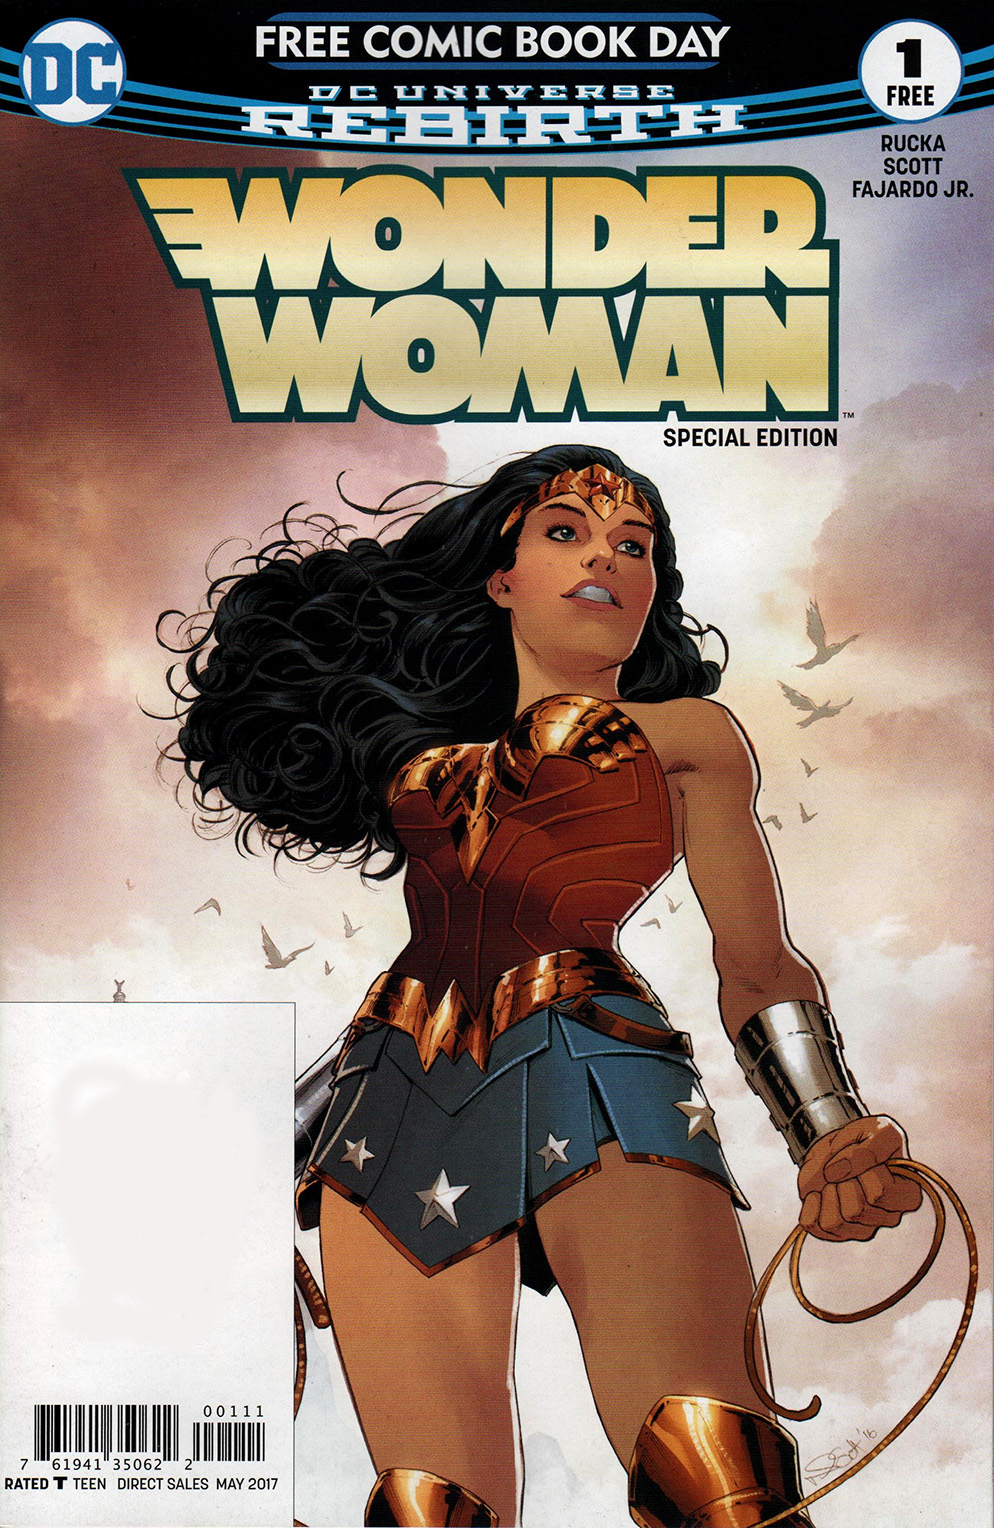 Read online Free Comic Book Day 2017 comic -  Issue # Wonder Woman 1 - 1